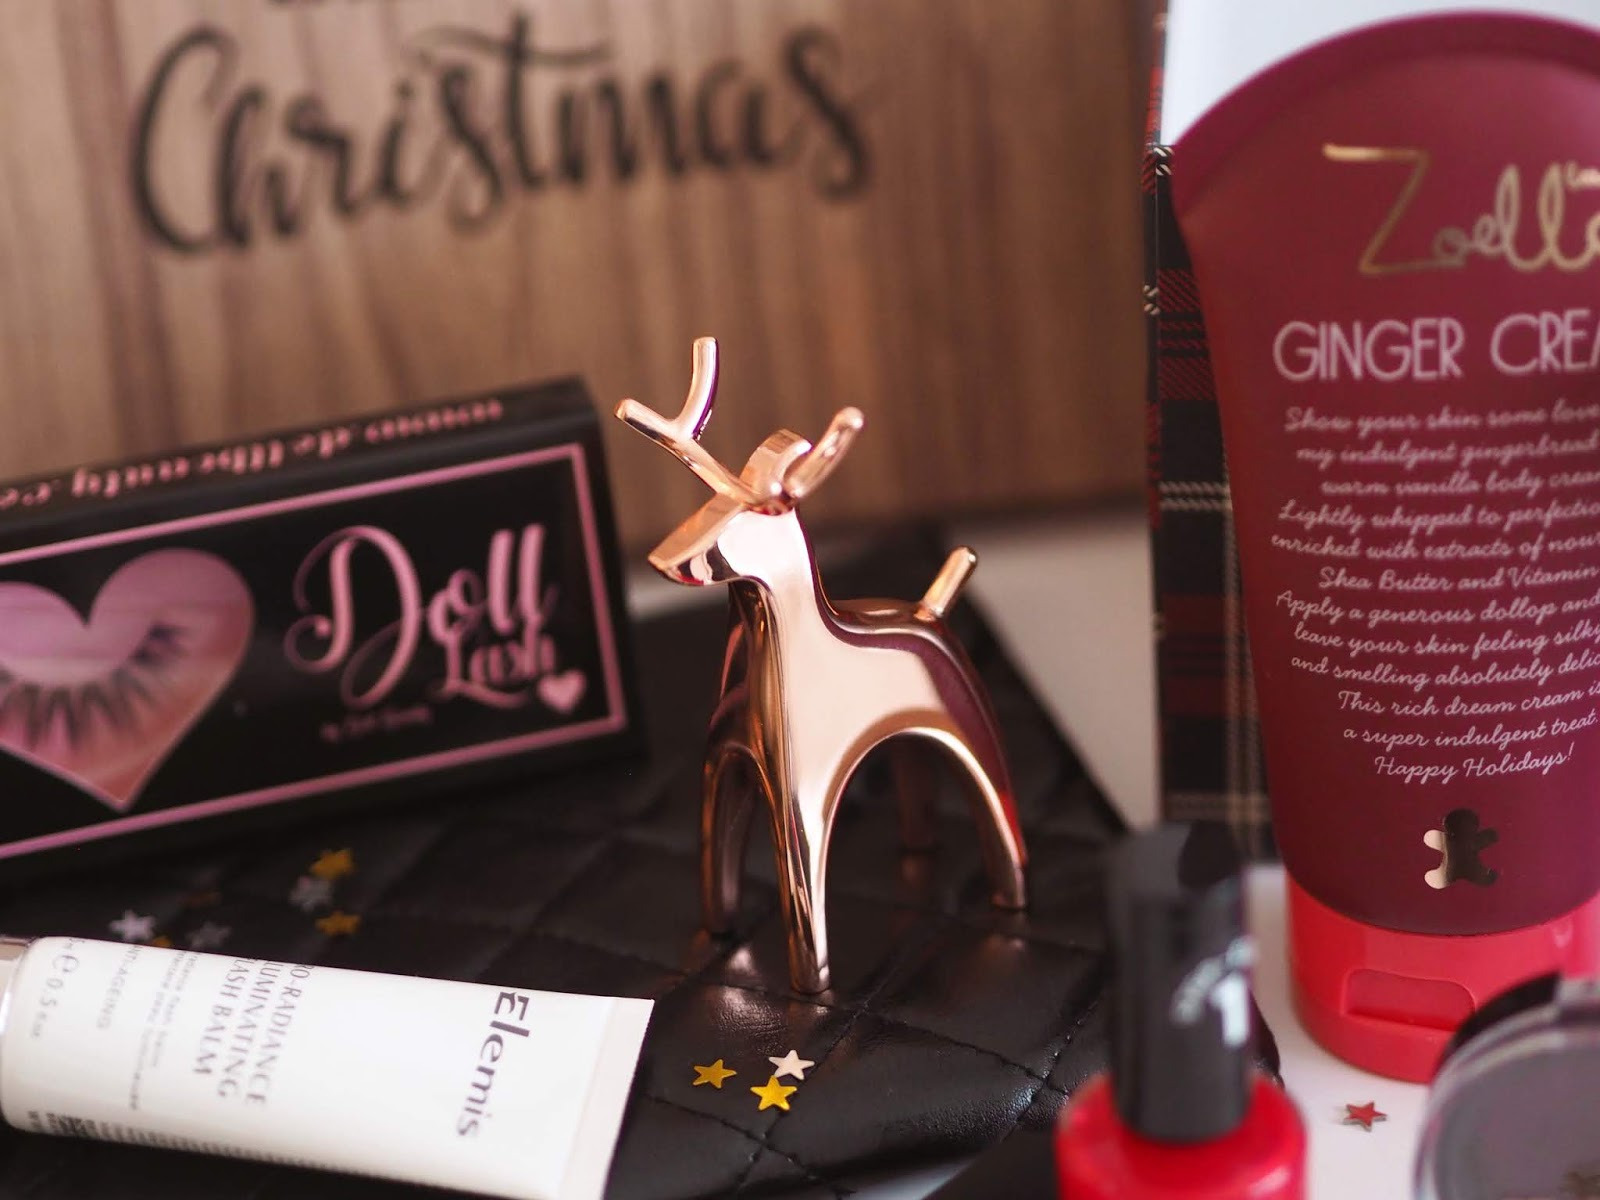 Giveaway: My Christmas Gift To You!, UK Blogger, Christmas Giveaway, Christmas Competition, Beauty Giveaway, Freebie Friday, RT to Win, Win It Wednesday, Competition, Festive Giveaway, Blogger Giveaway